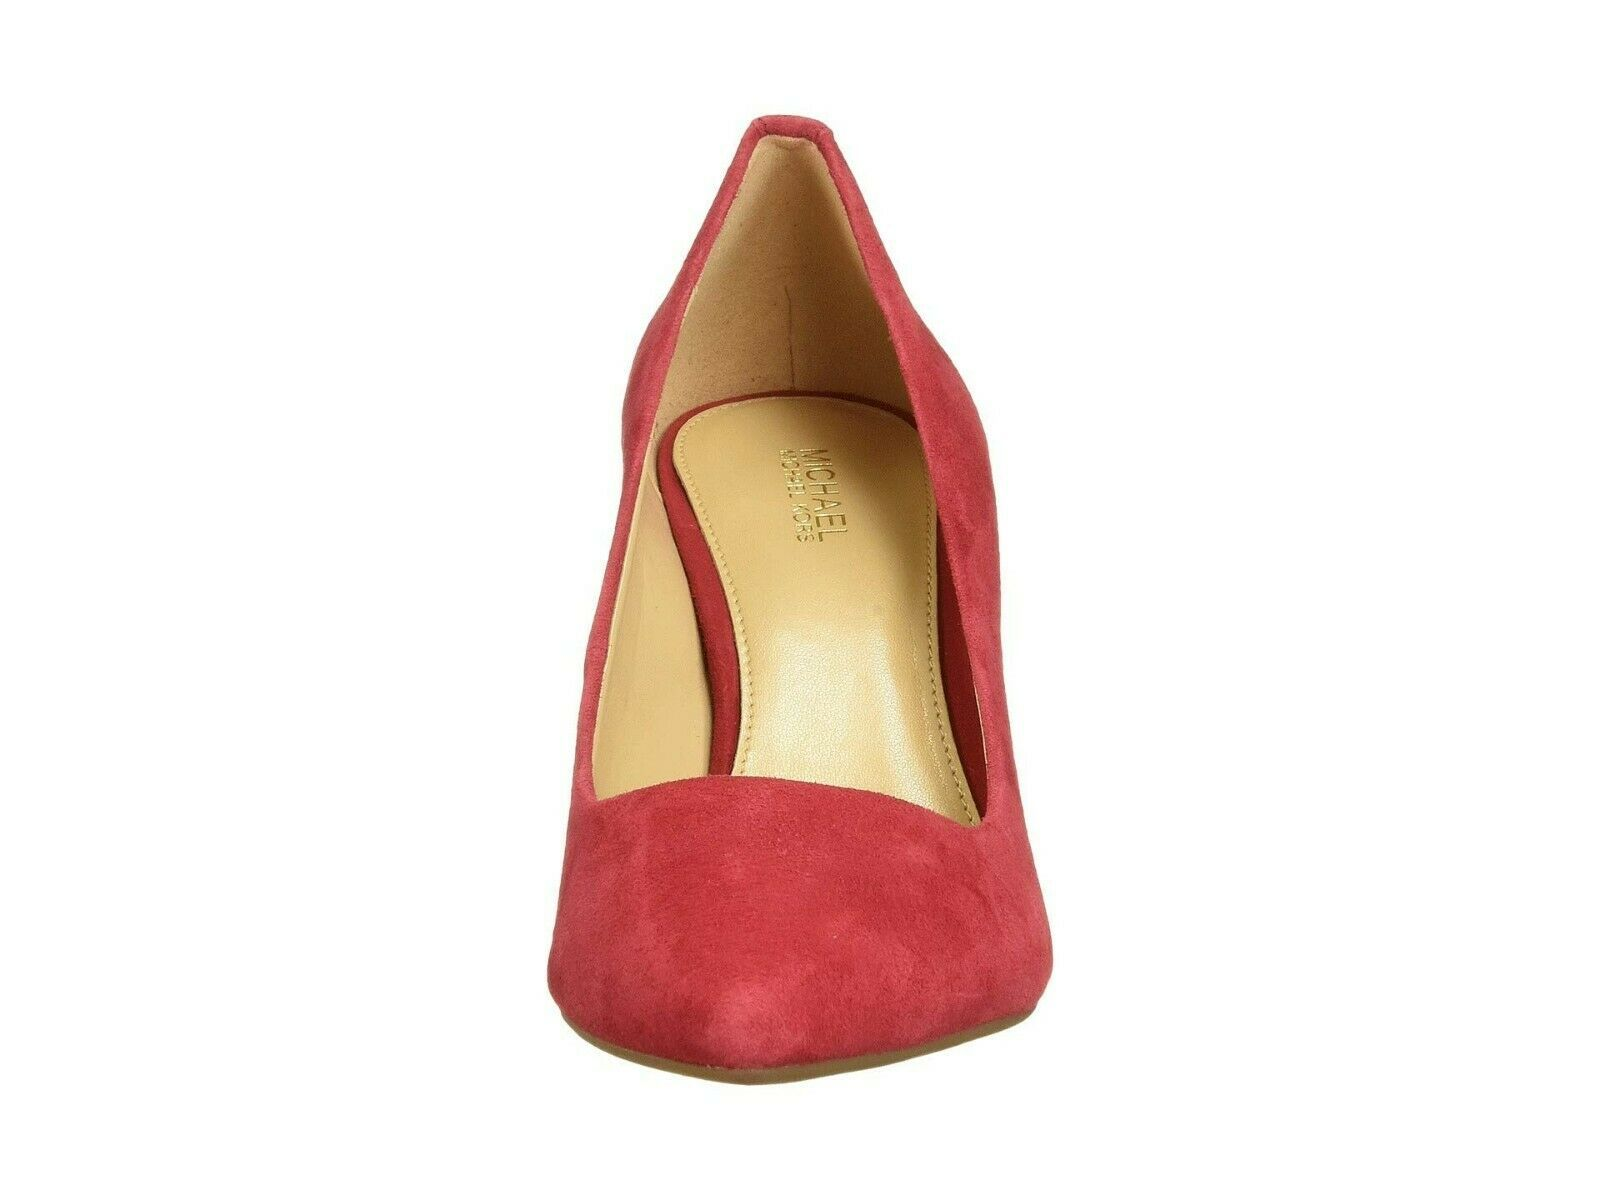 Michael Kors Women's Dorothy Flex Scarlet Pumps Shoes